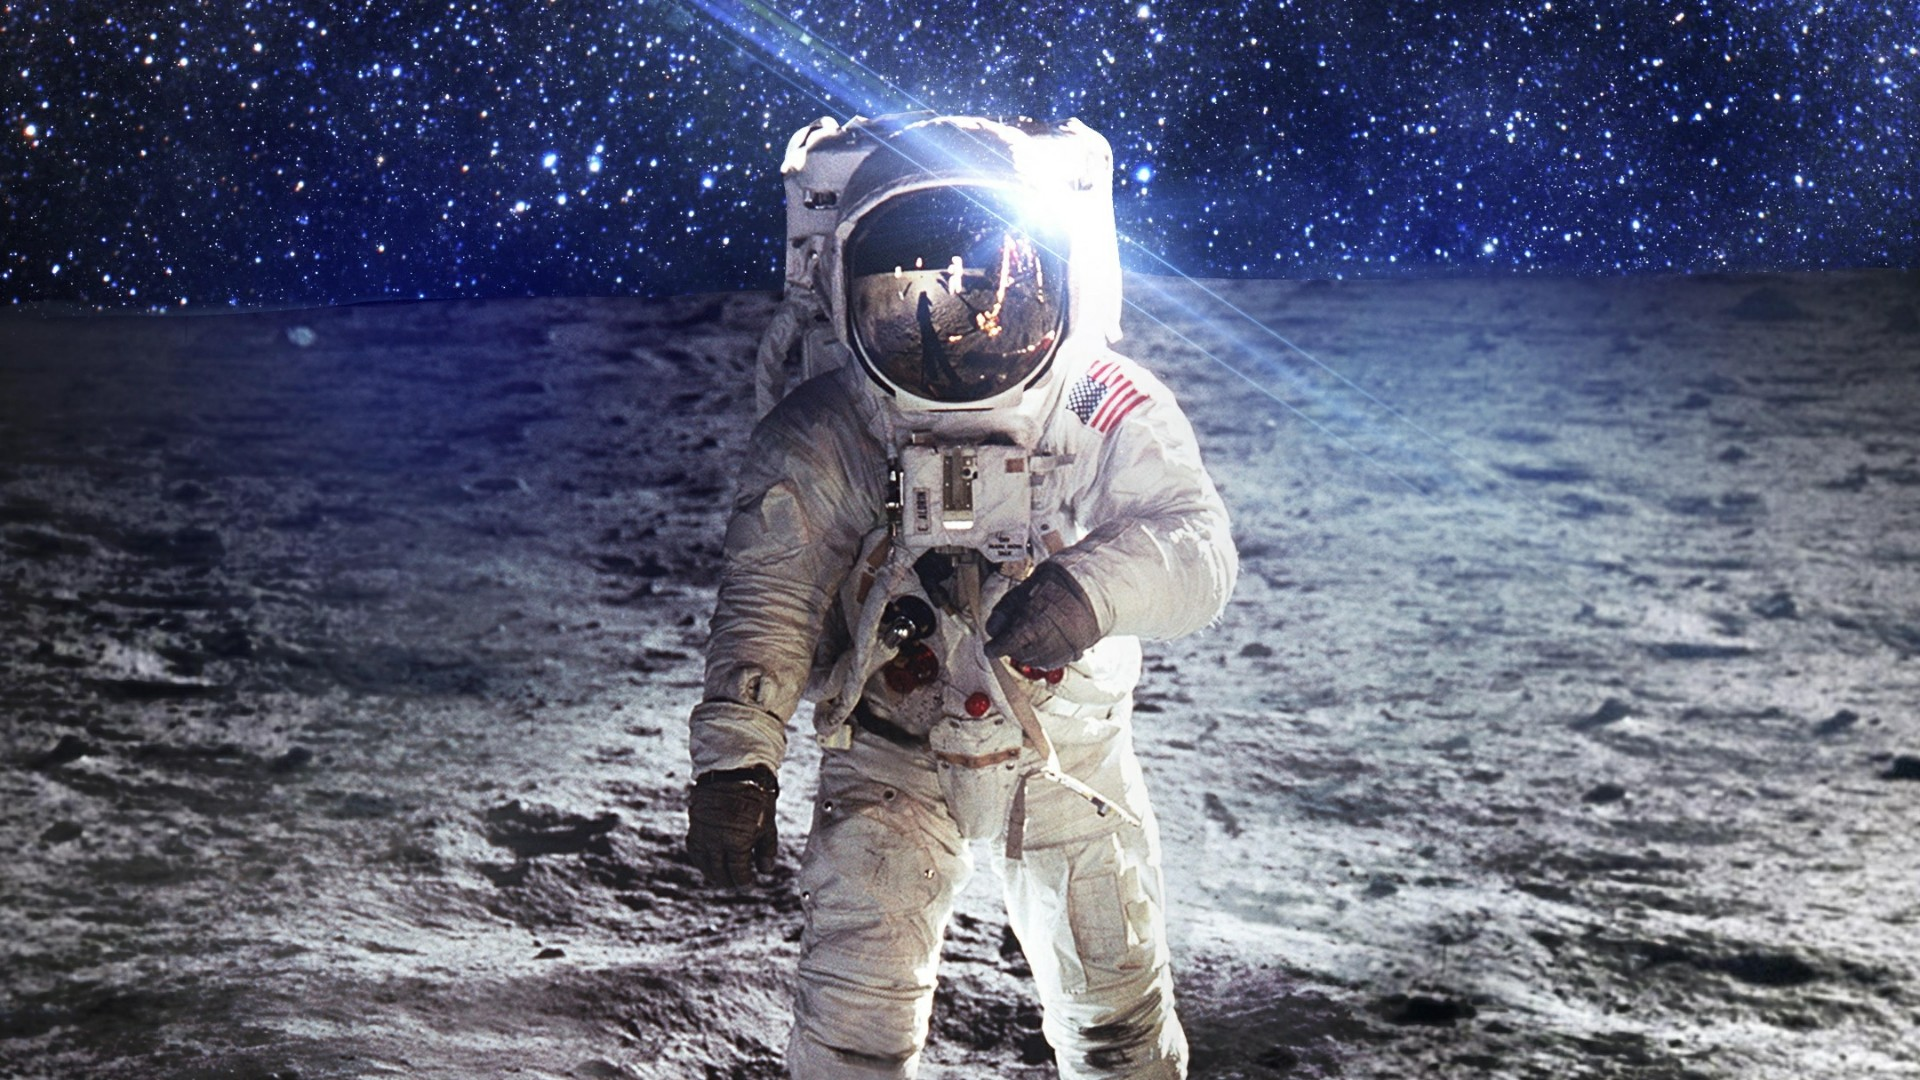 ‍ Astronaut on the moon  wallpaper